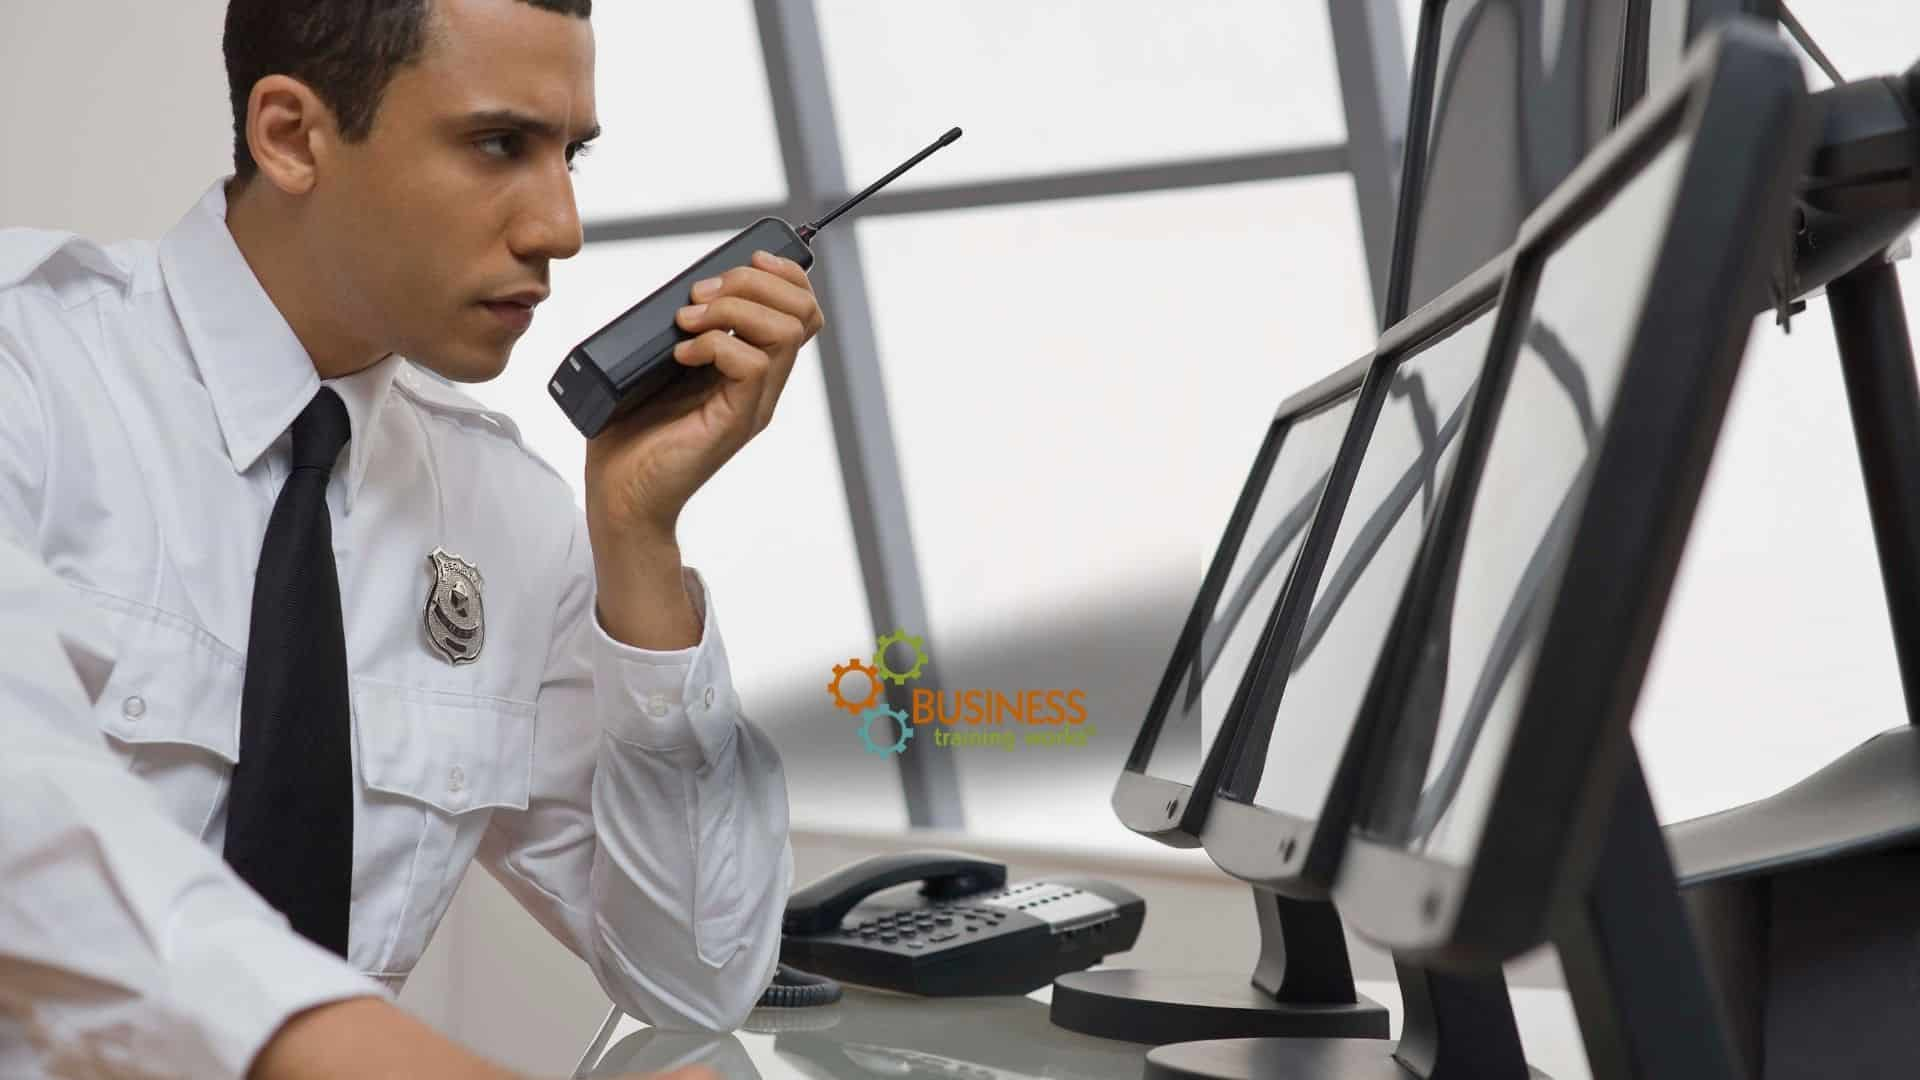 Improve Your Receptionists' and Other Gatekeepers' Service Skills